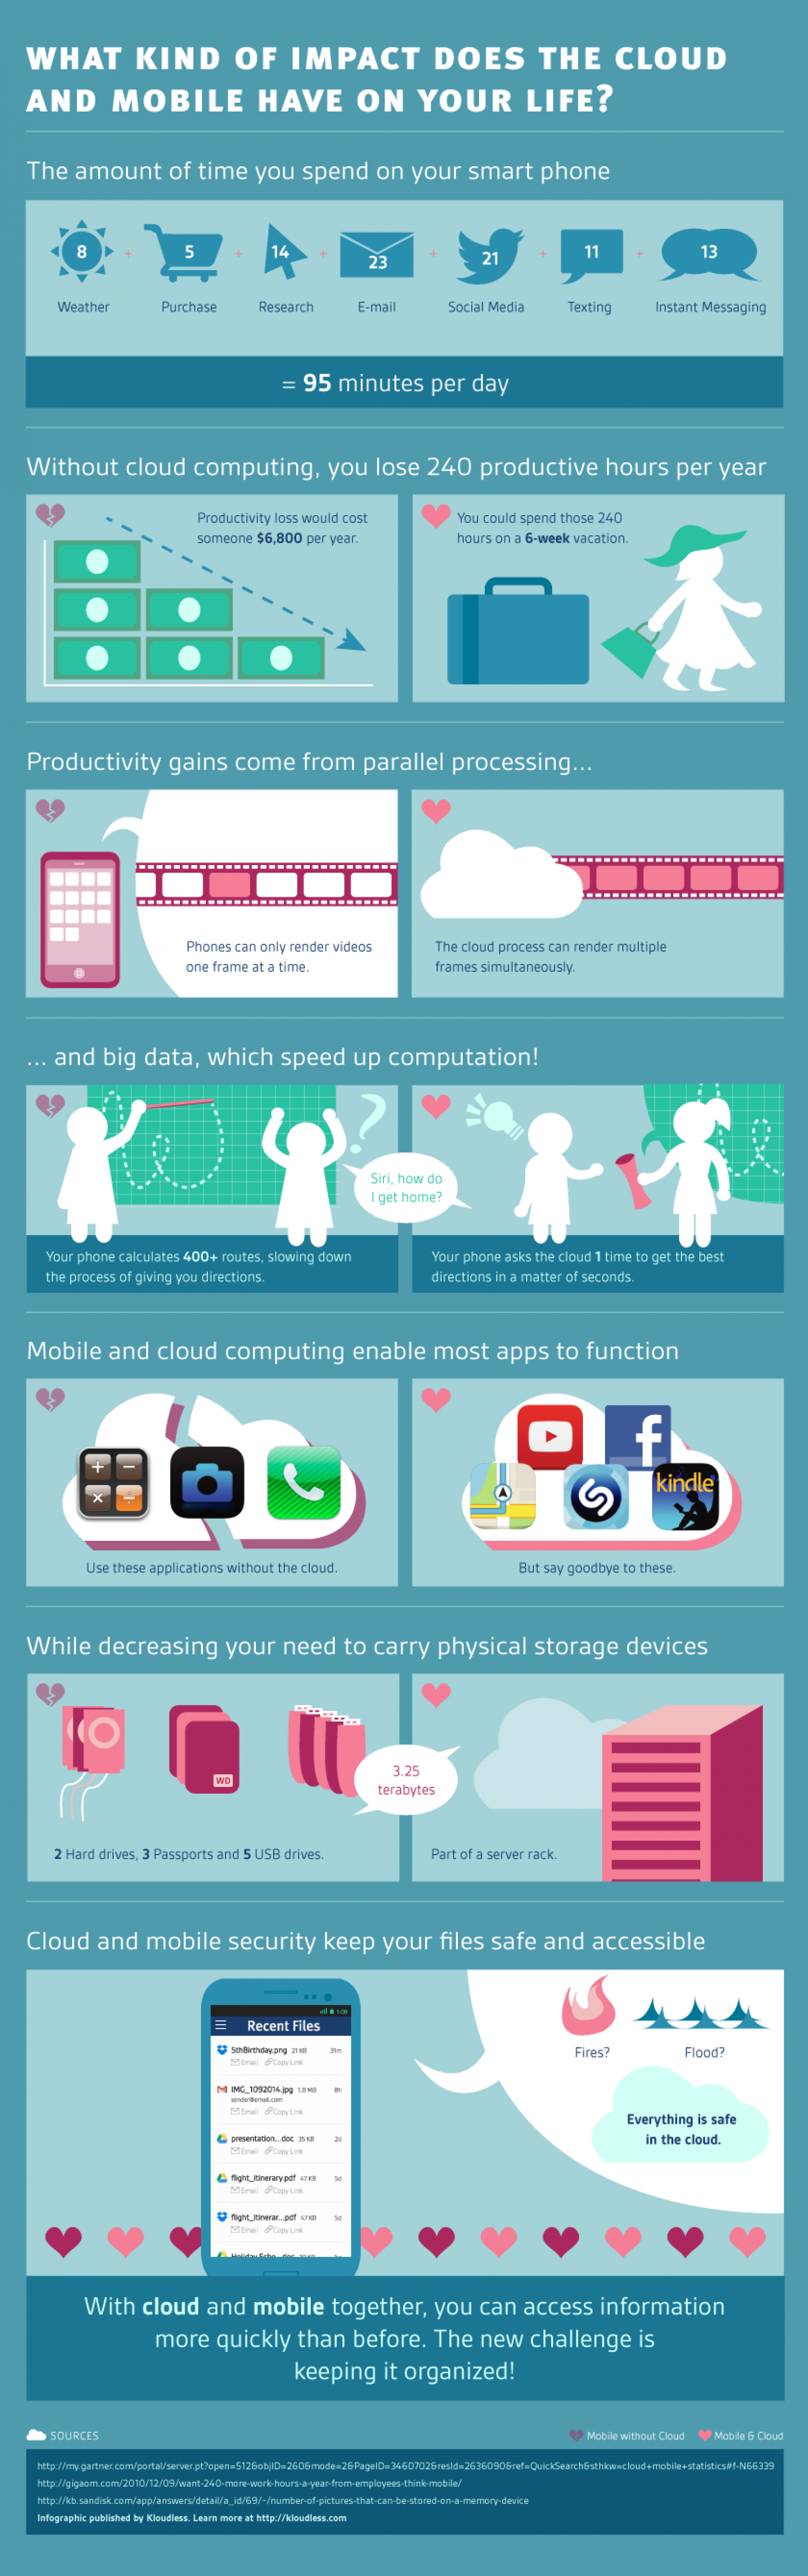 What Kind of Impact Does the Cloud and Mobile Have on Your Life Infographic